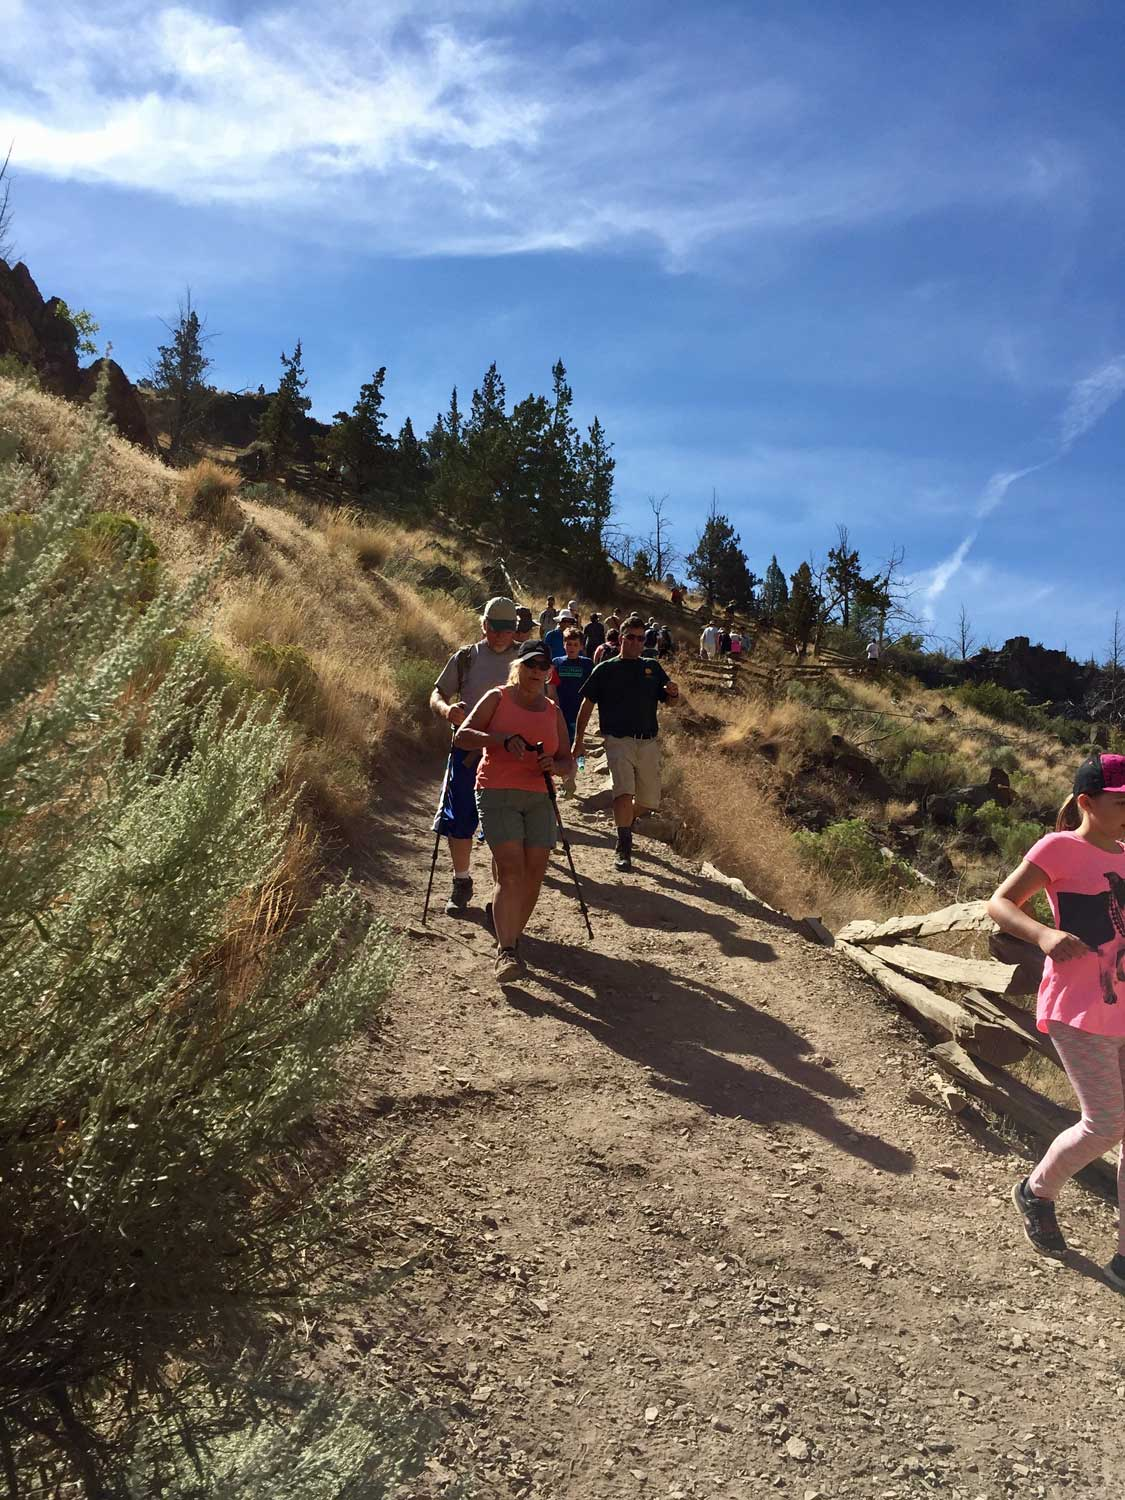 Racing to get in position for the Total Solar Eclipse at Smith Rock State Park